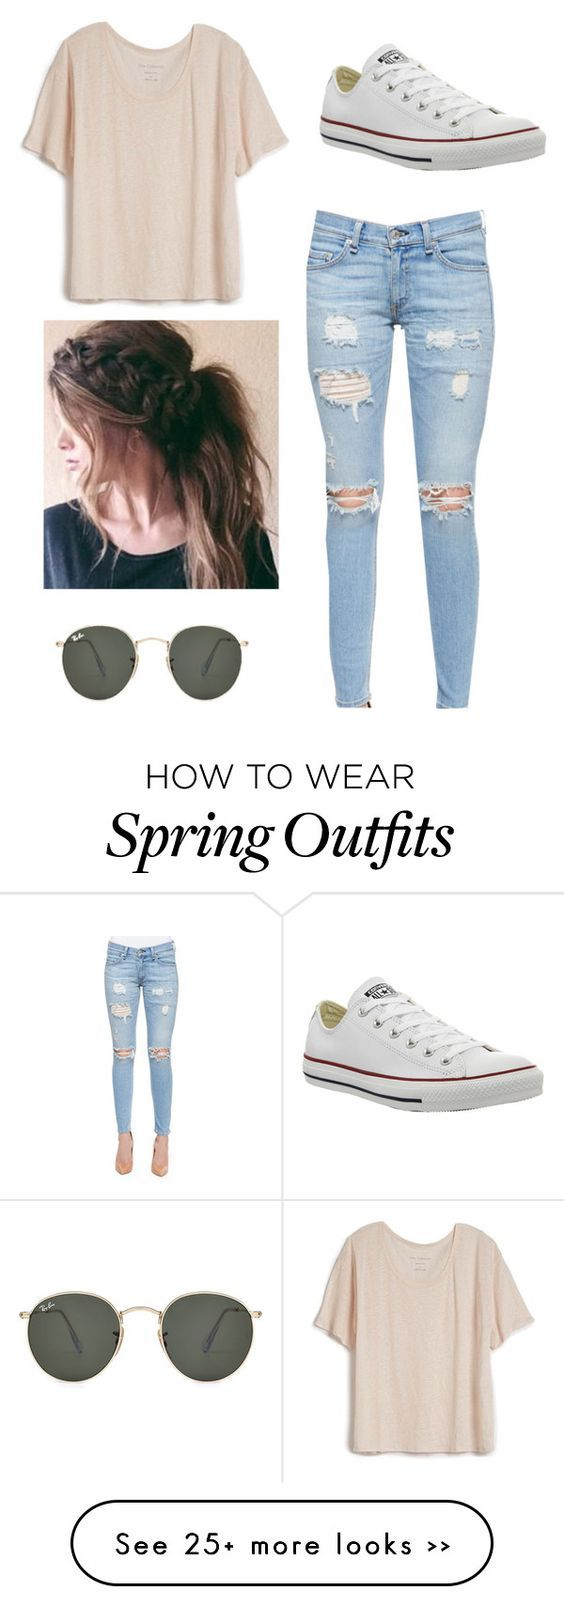 """Spring outfit <3"" by jessie-taylor-i on Polyvore:"